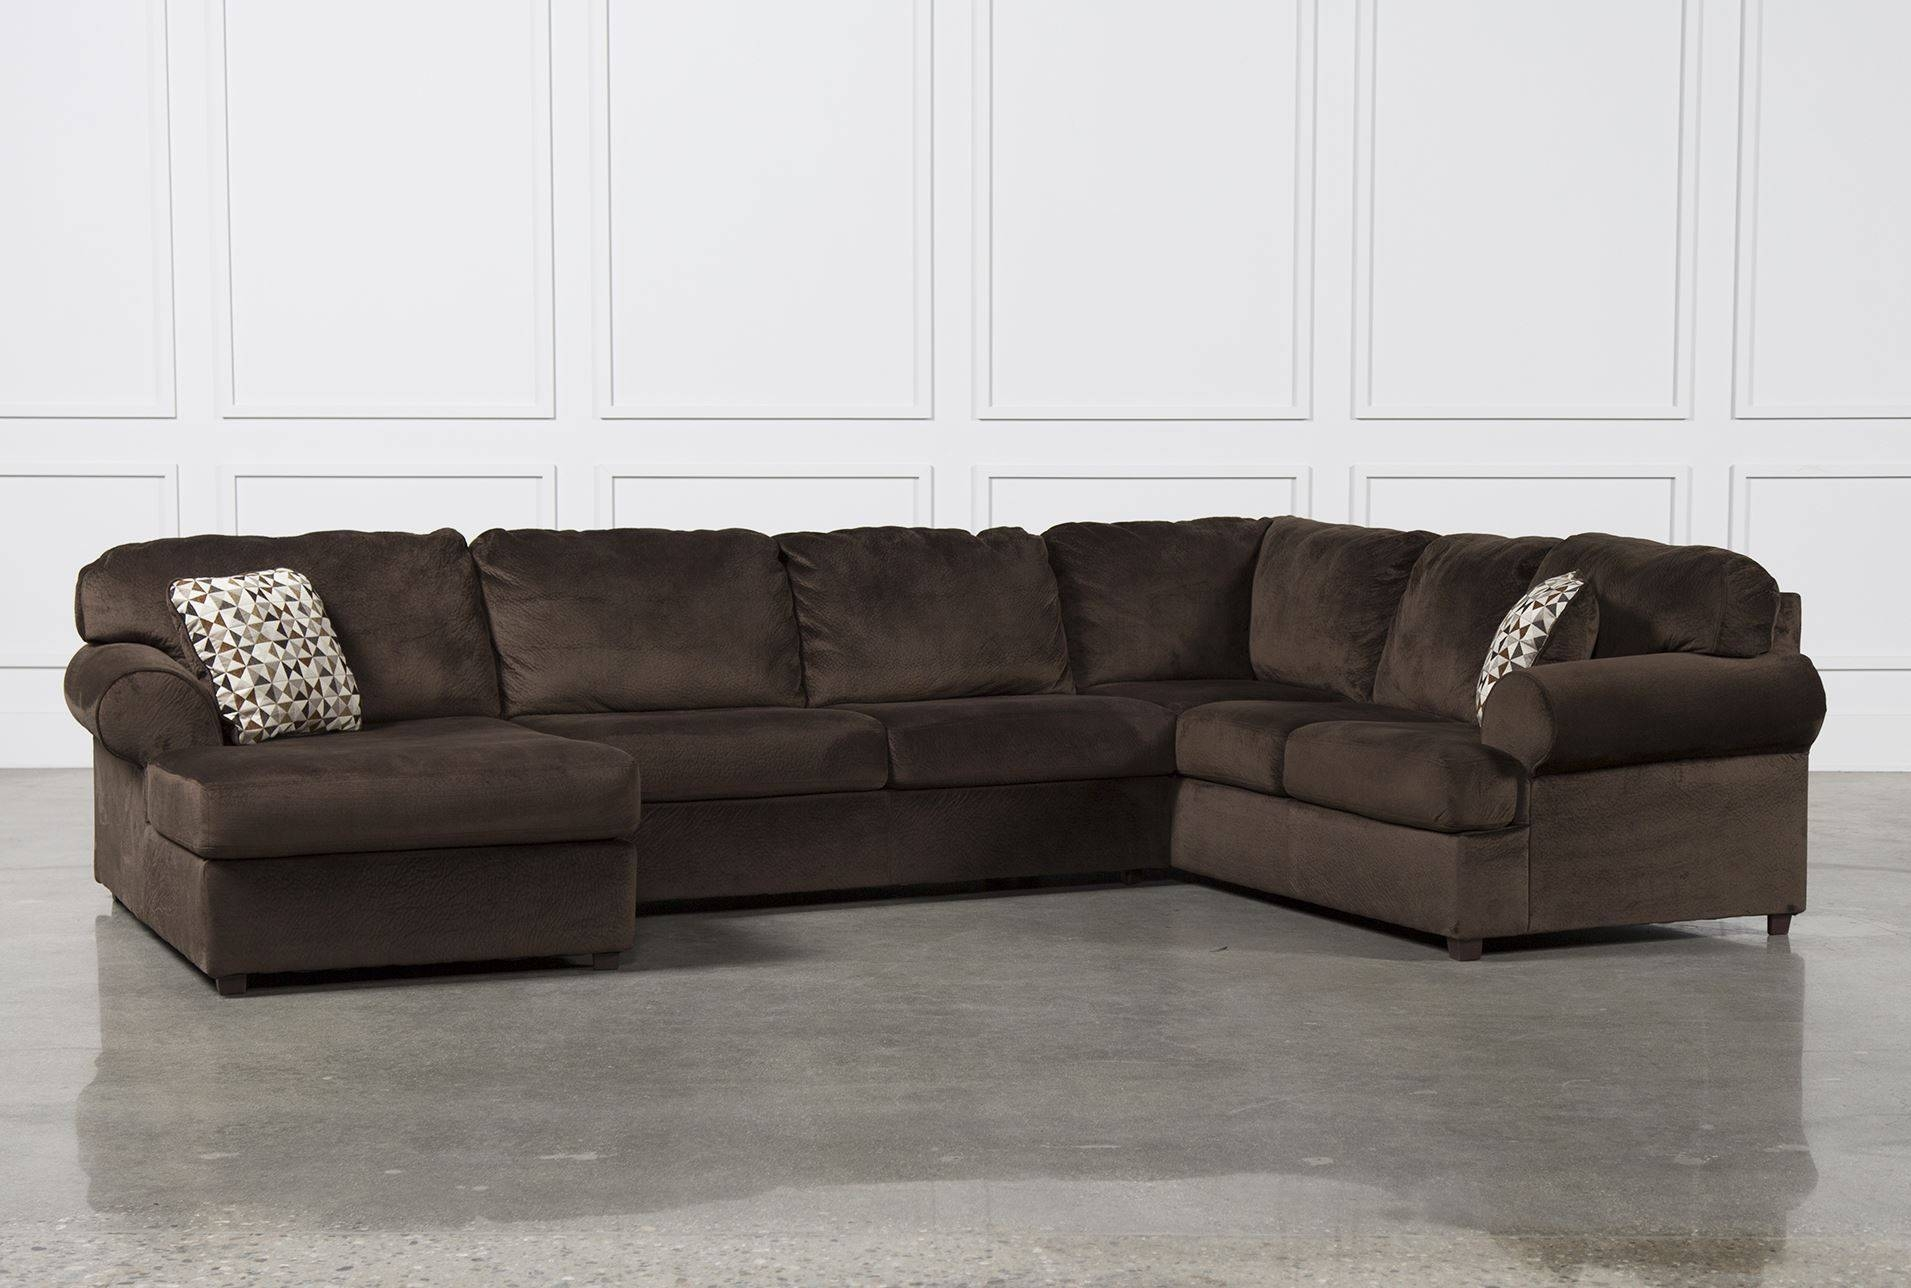 Amazing 3 Piece Leather Sectional Sofa With Chaise 97 About with Sectional Sofas Portland (Image 1 of 30)